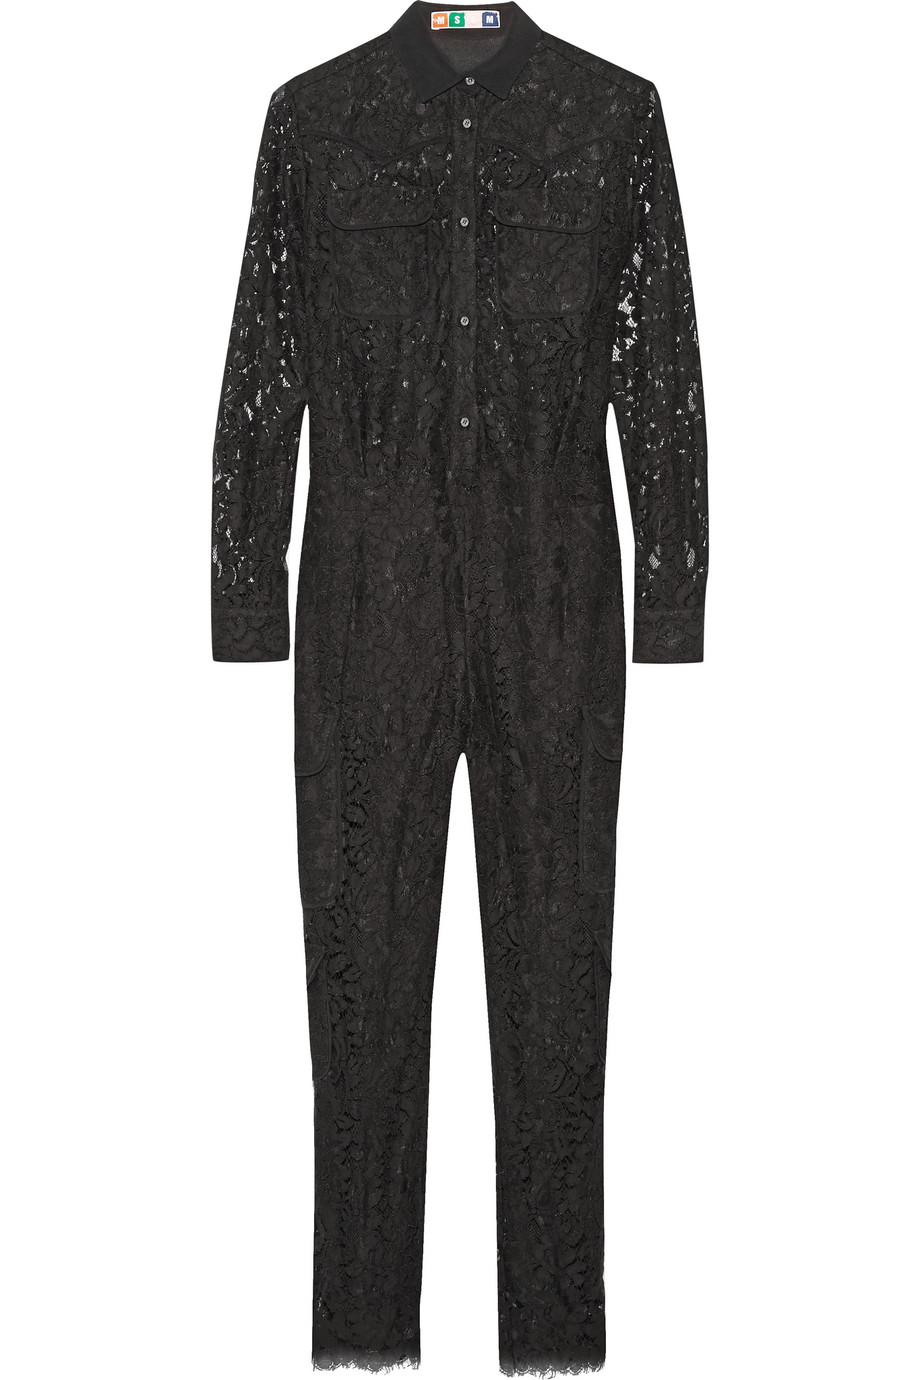 MSGM Crepe-Trimmed Lace Jumpsuit, Black, Women's, Size: 42